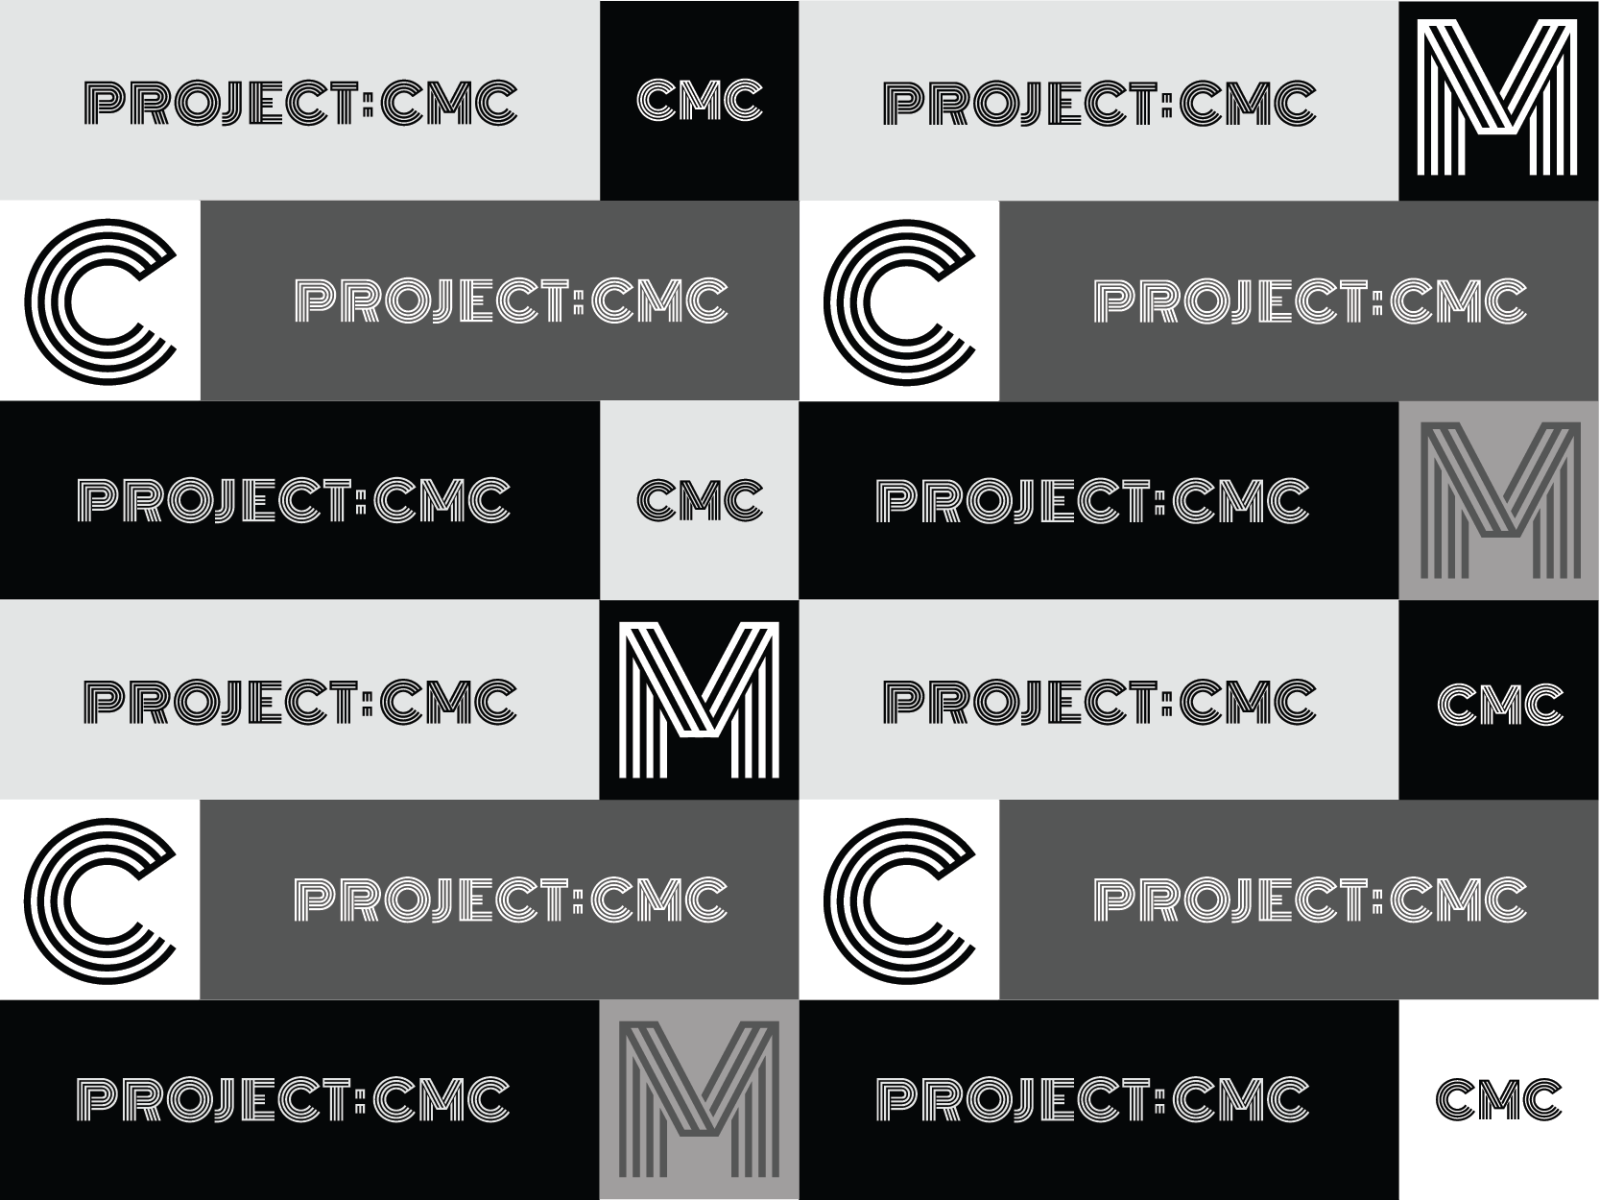 Project: CMC Logo Alternatives